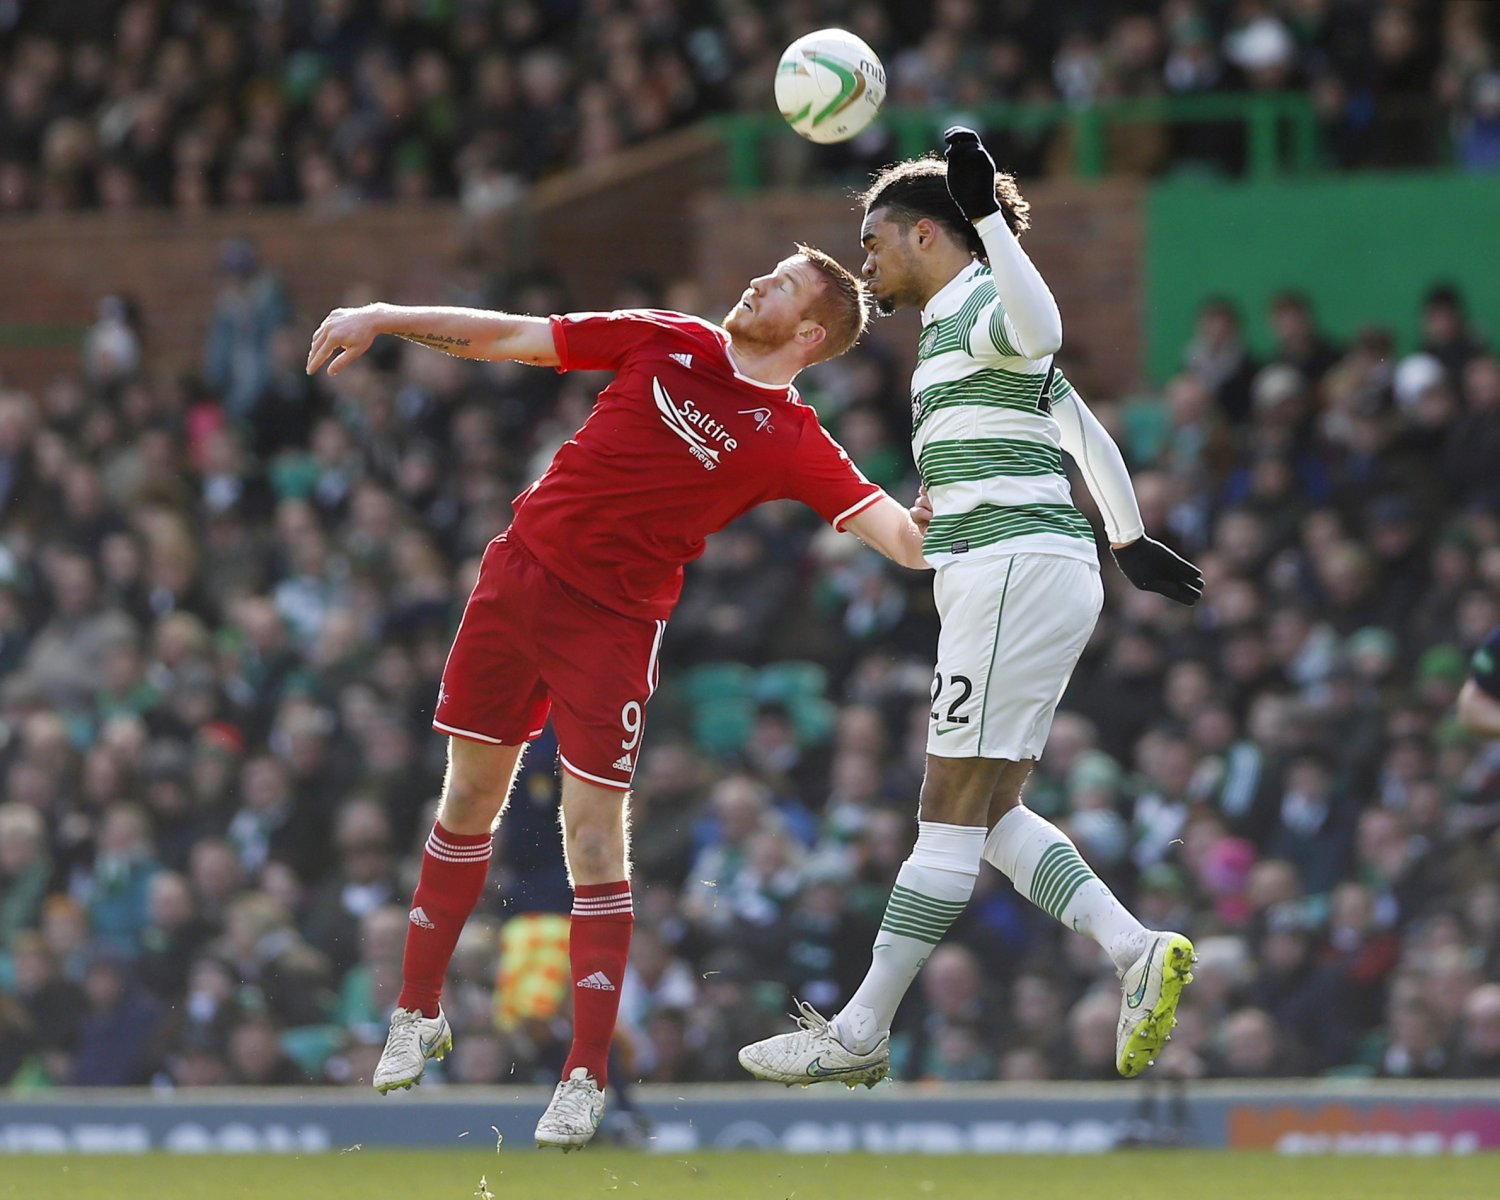 Securing Jason Denayer will help ease turmoil at Celtic